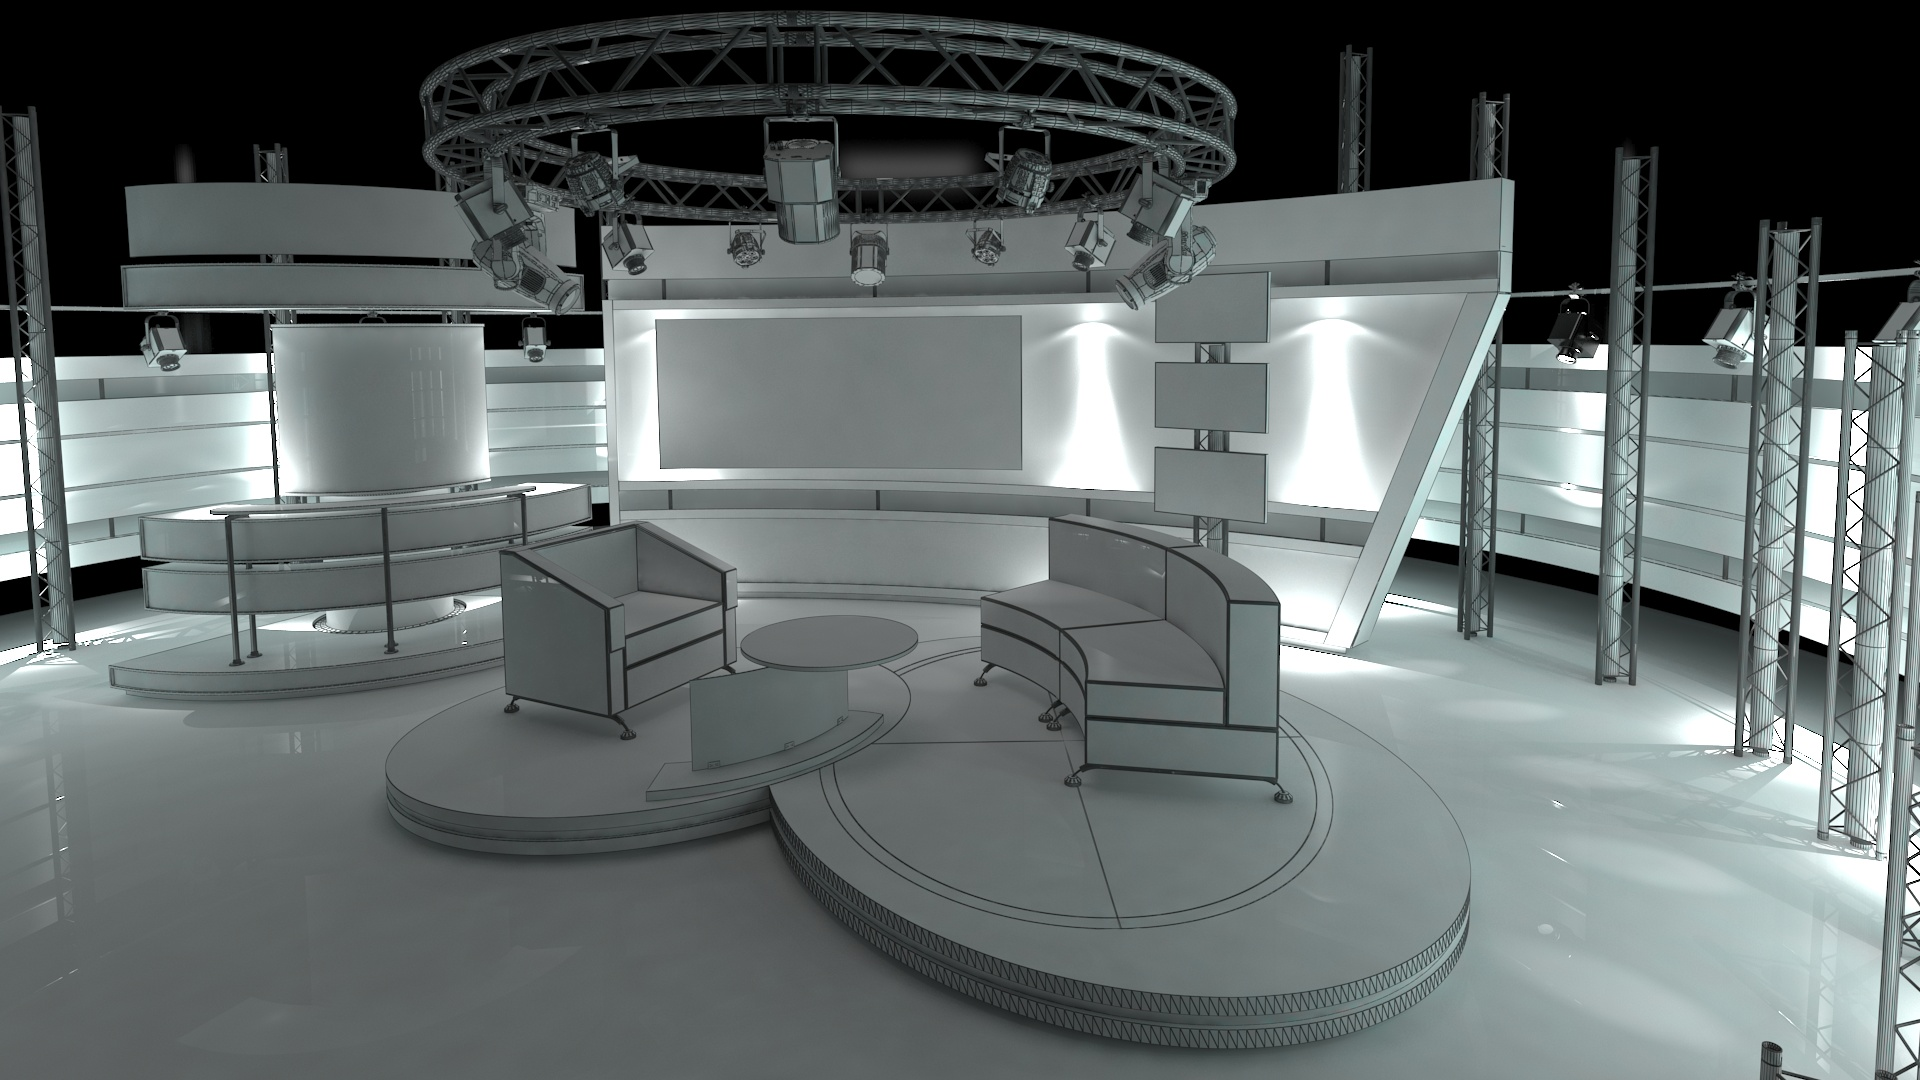 virtual tv studio chat set 1 3d model dwg dxf obj c4d c4d max 264000